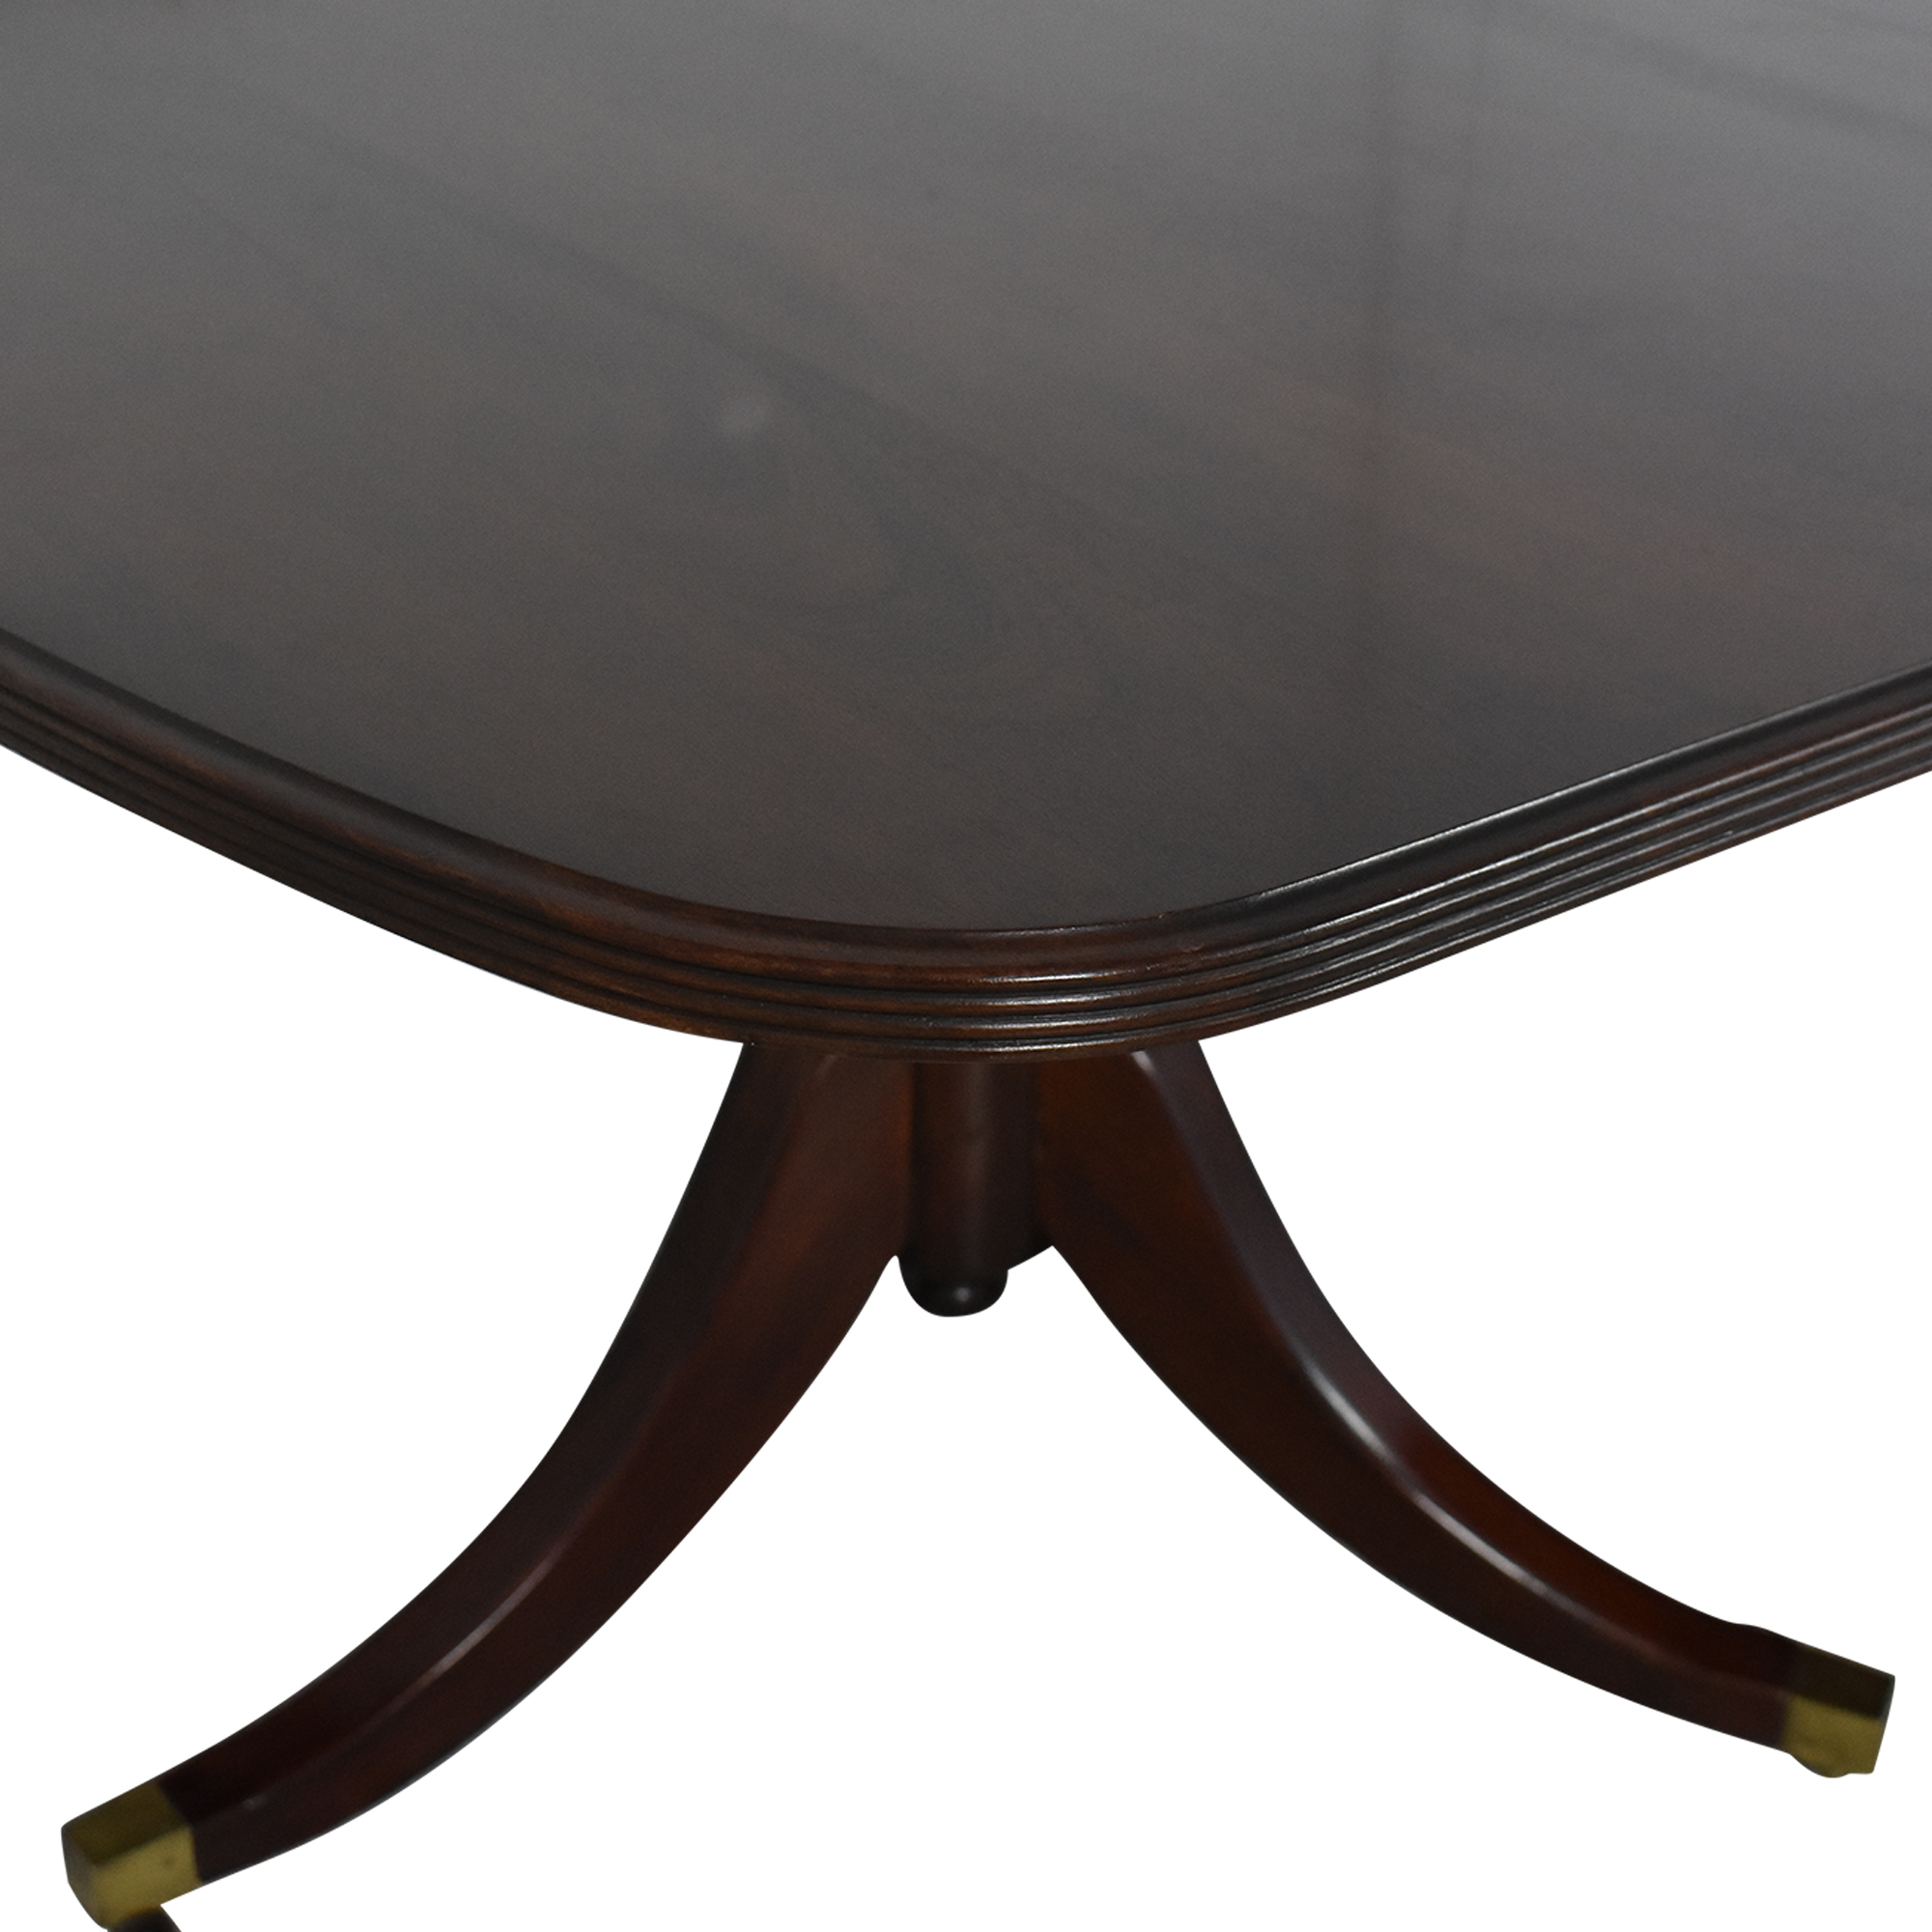 Davis Cabinet Company Dining Room Table sale